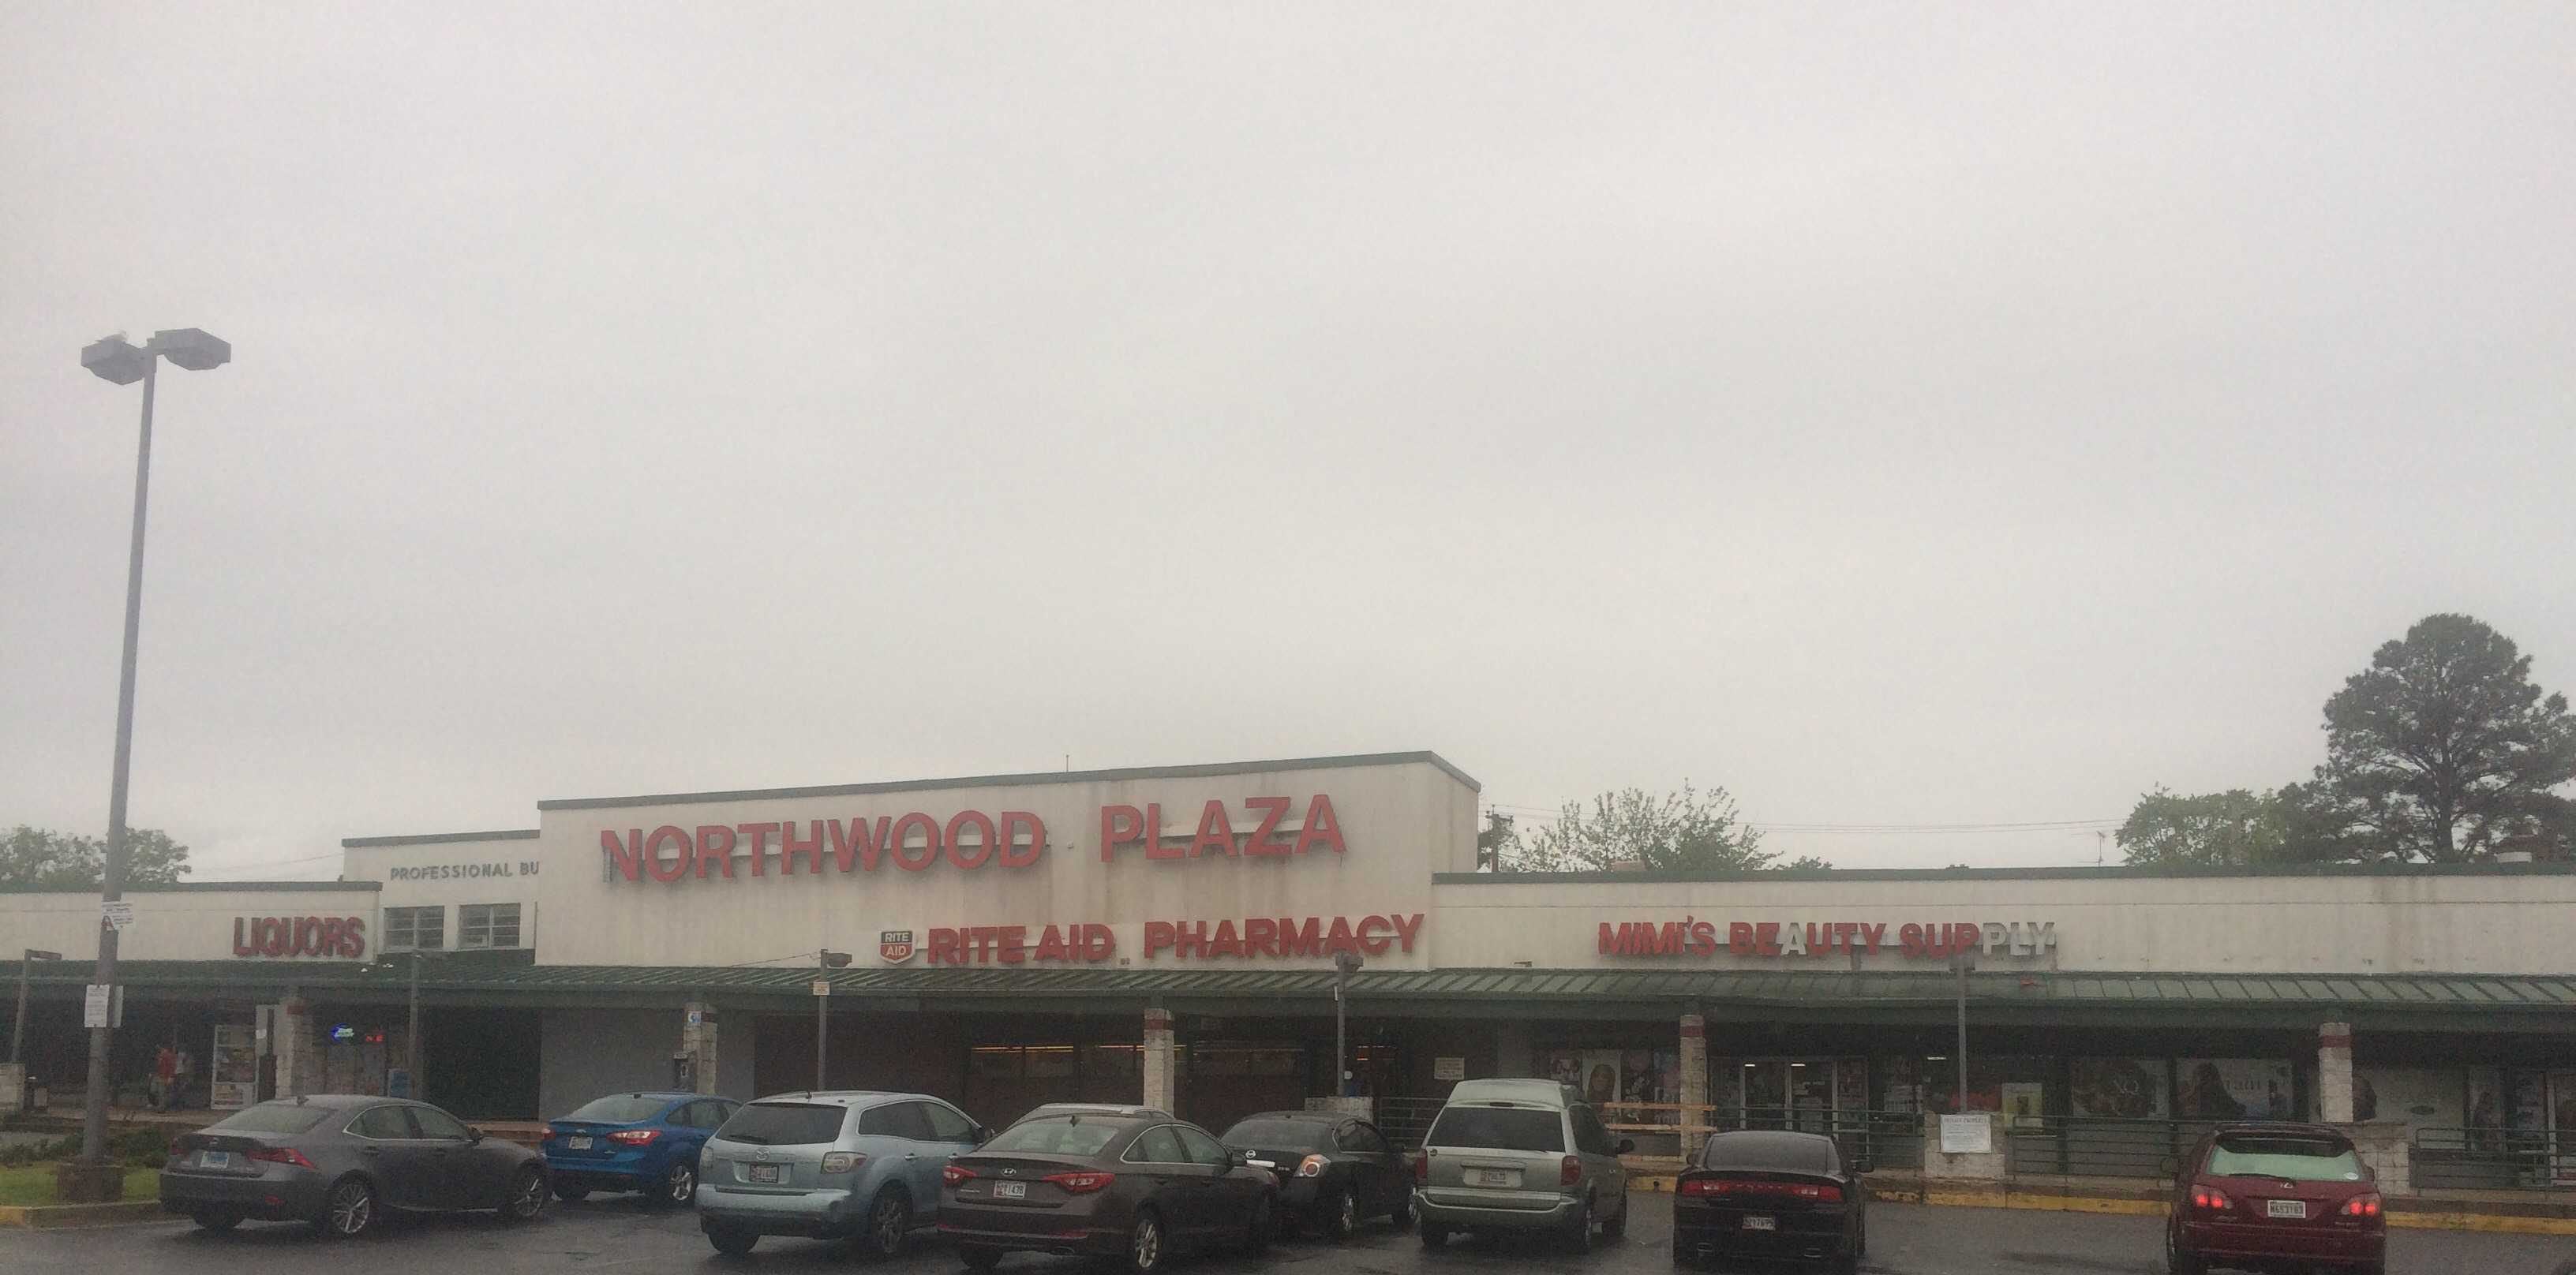 Northwood Plaza as it stands today. Morgan State University plans to redevelop the area in the near future. Photo by Akira Kyles.